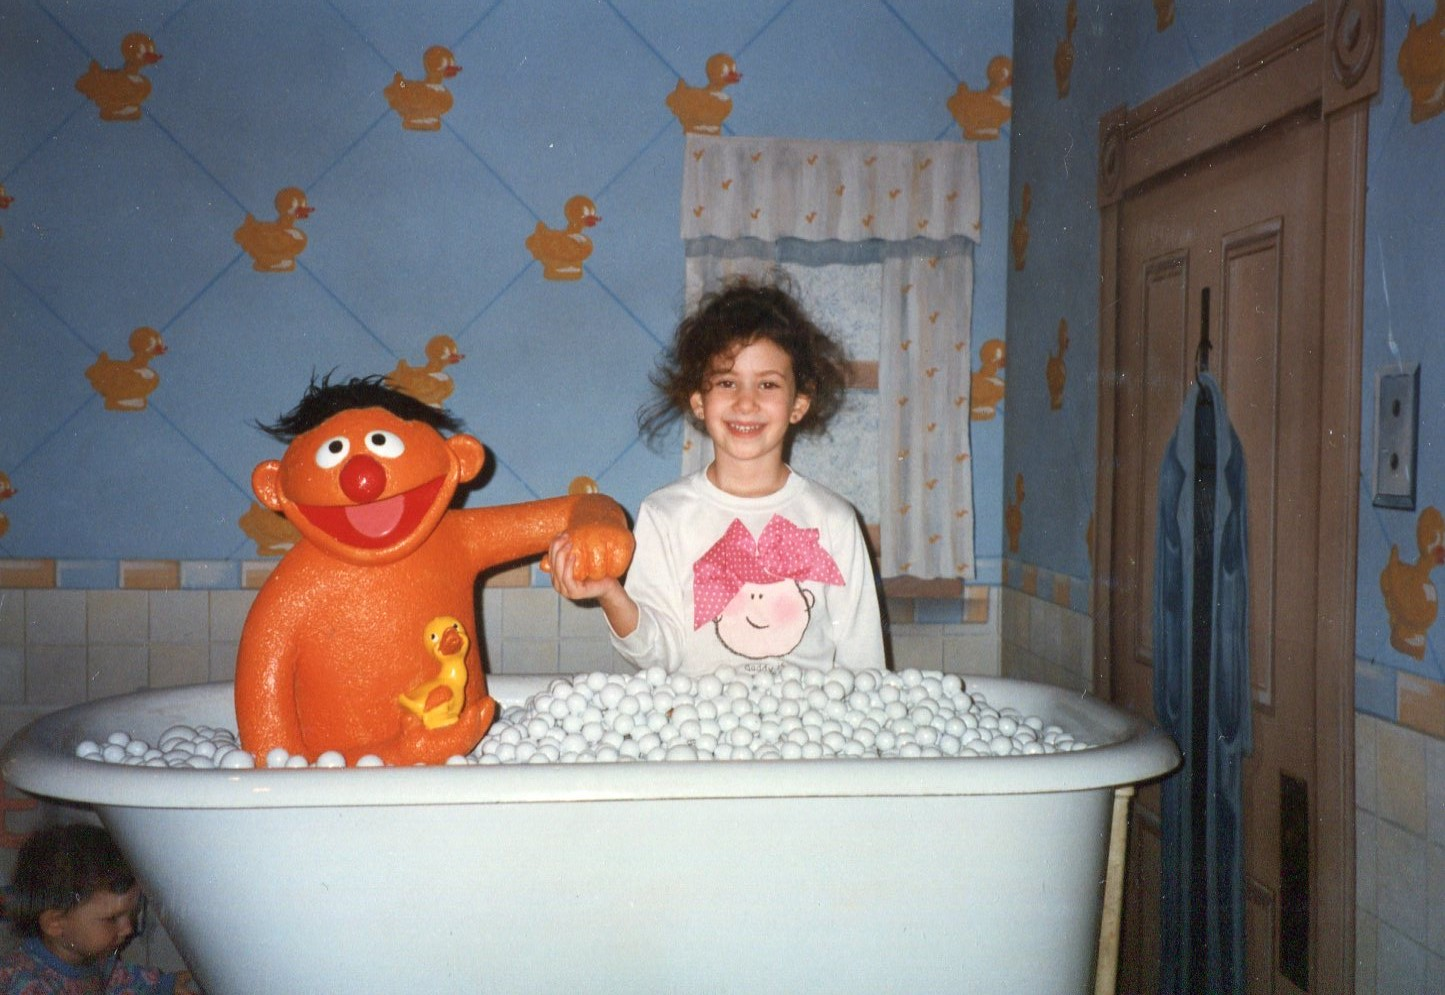 at Sesame Place with Ernie